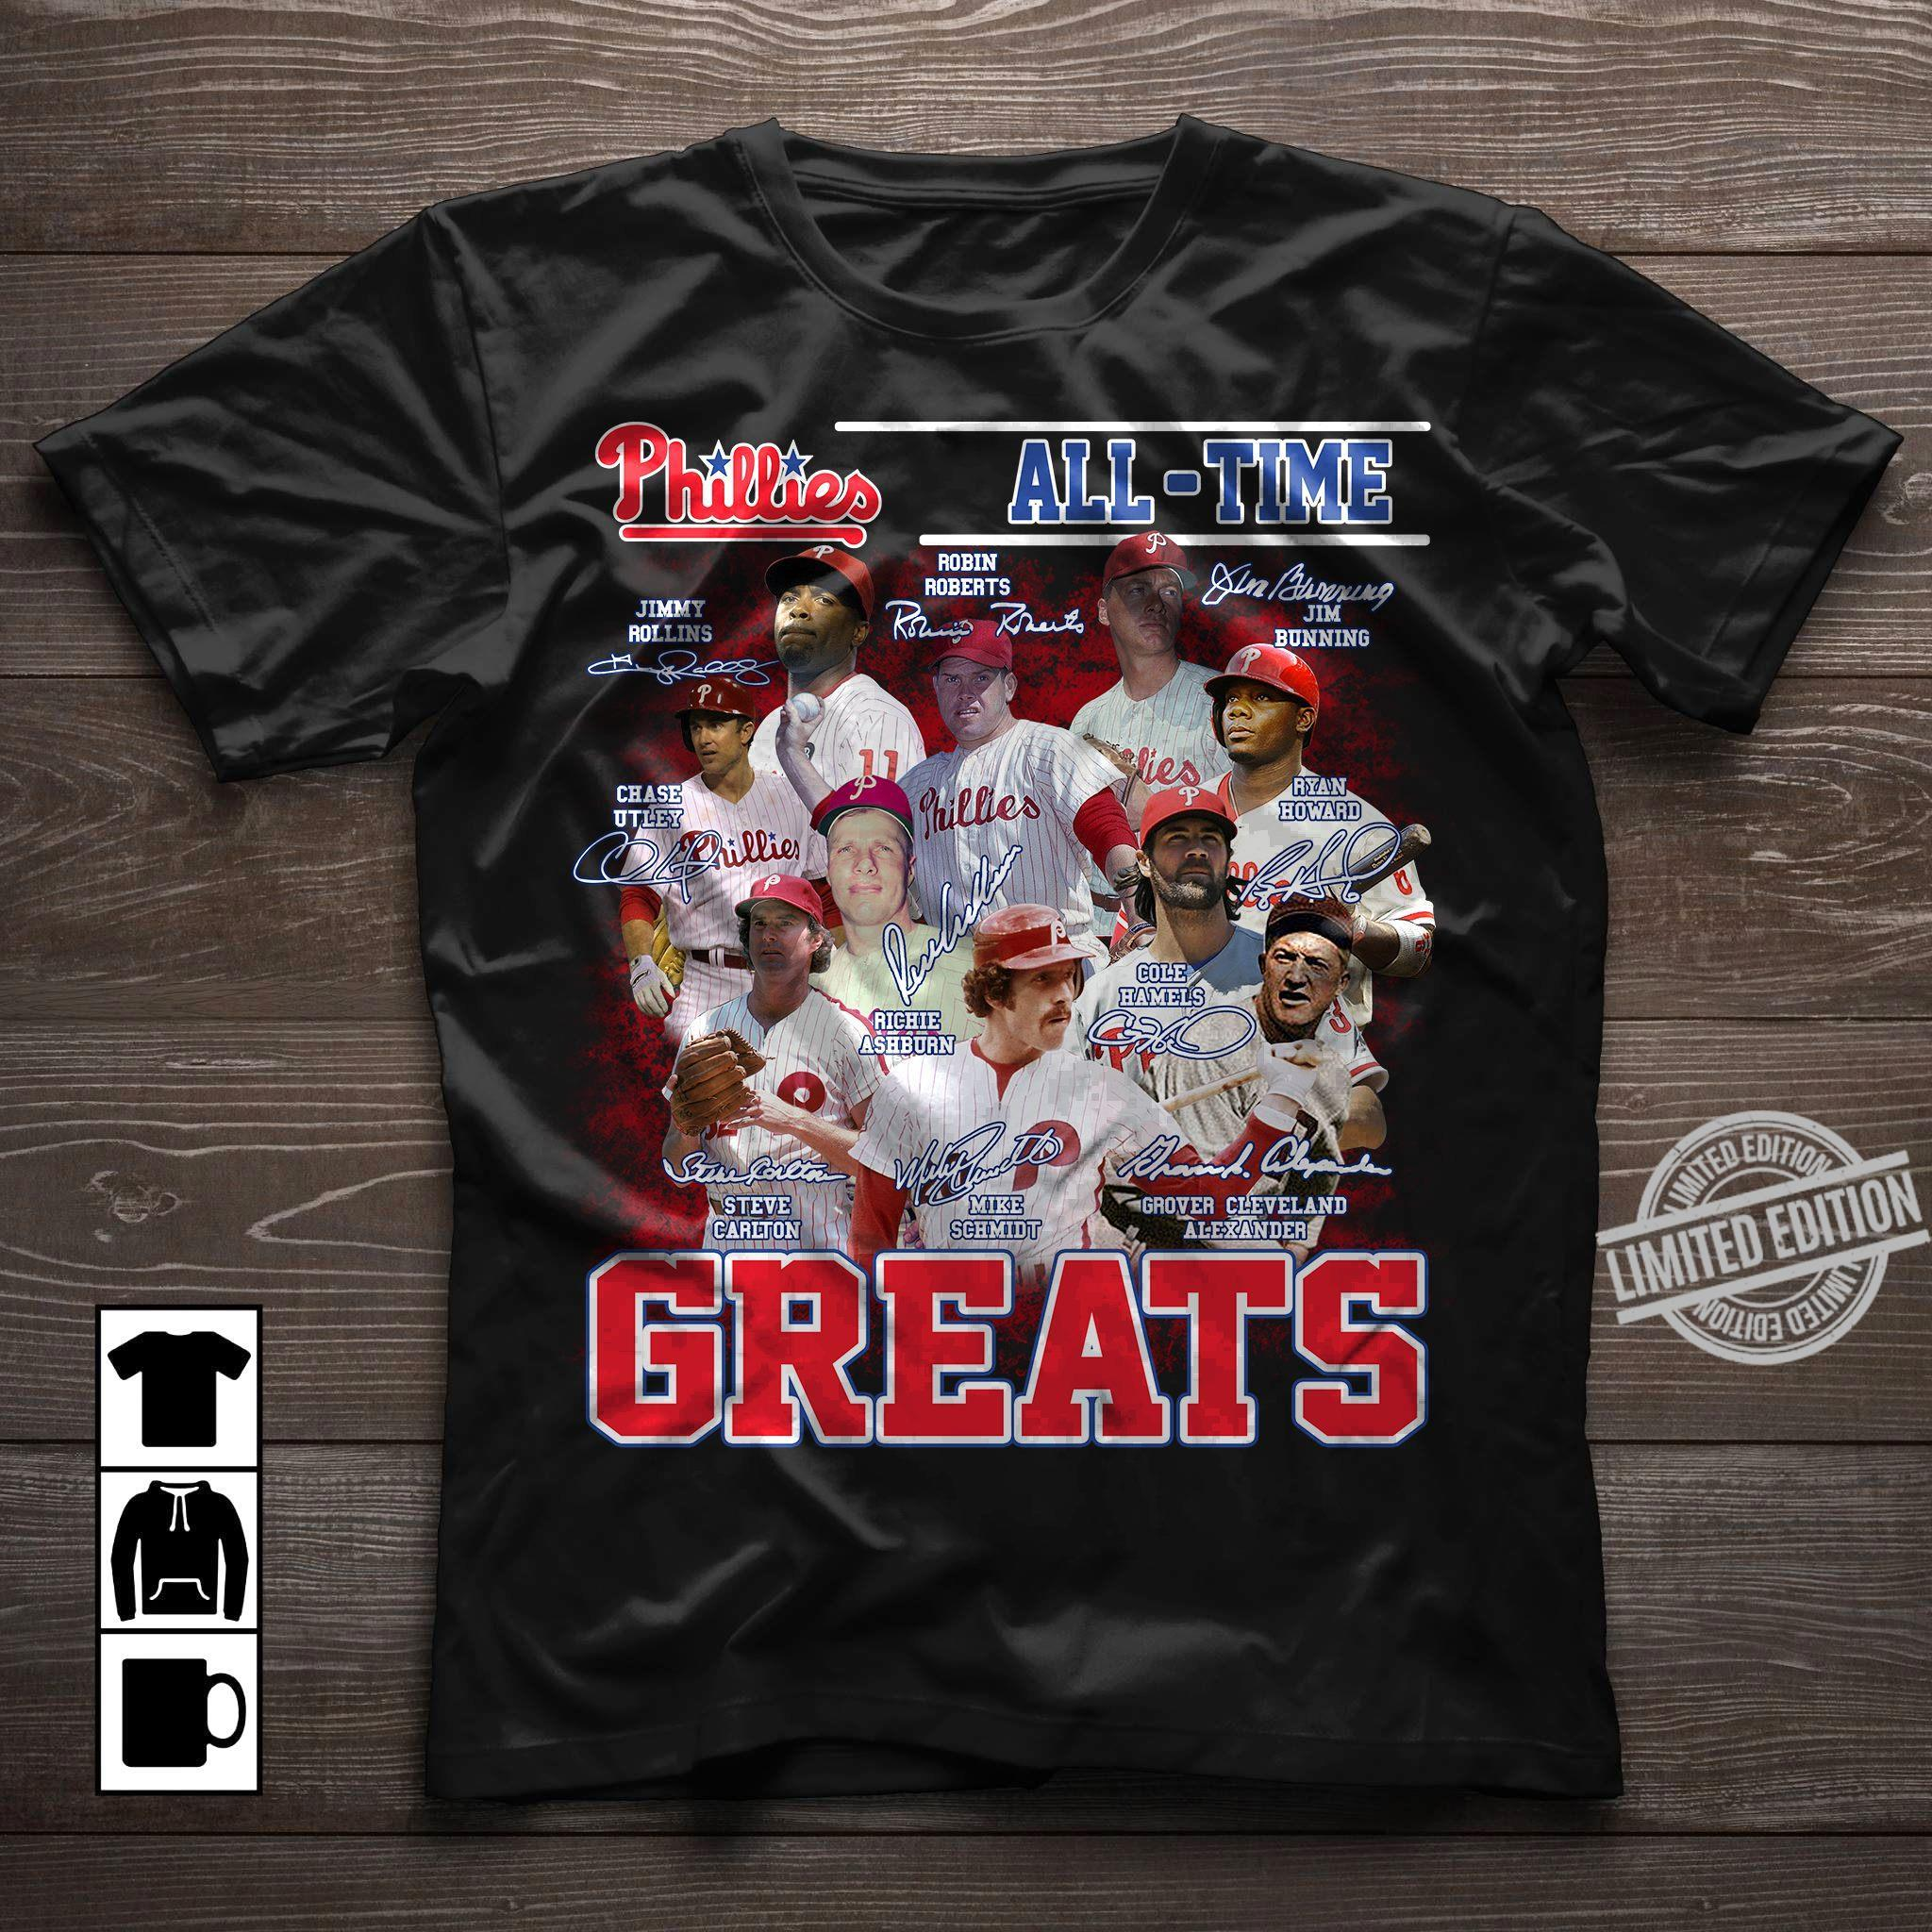 All-Time Greats Shirt